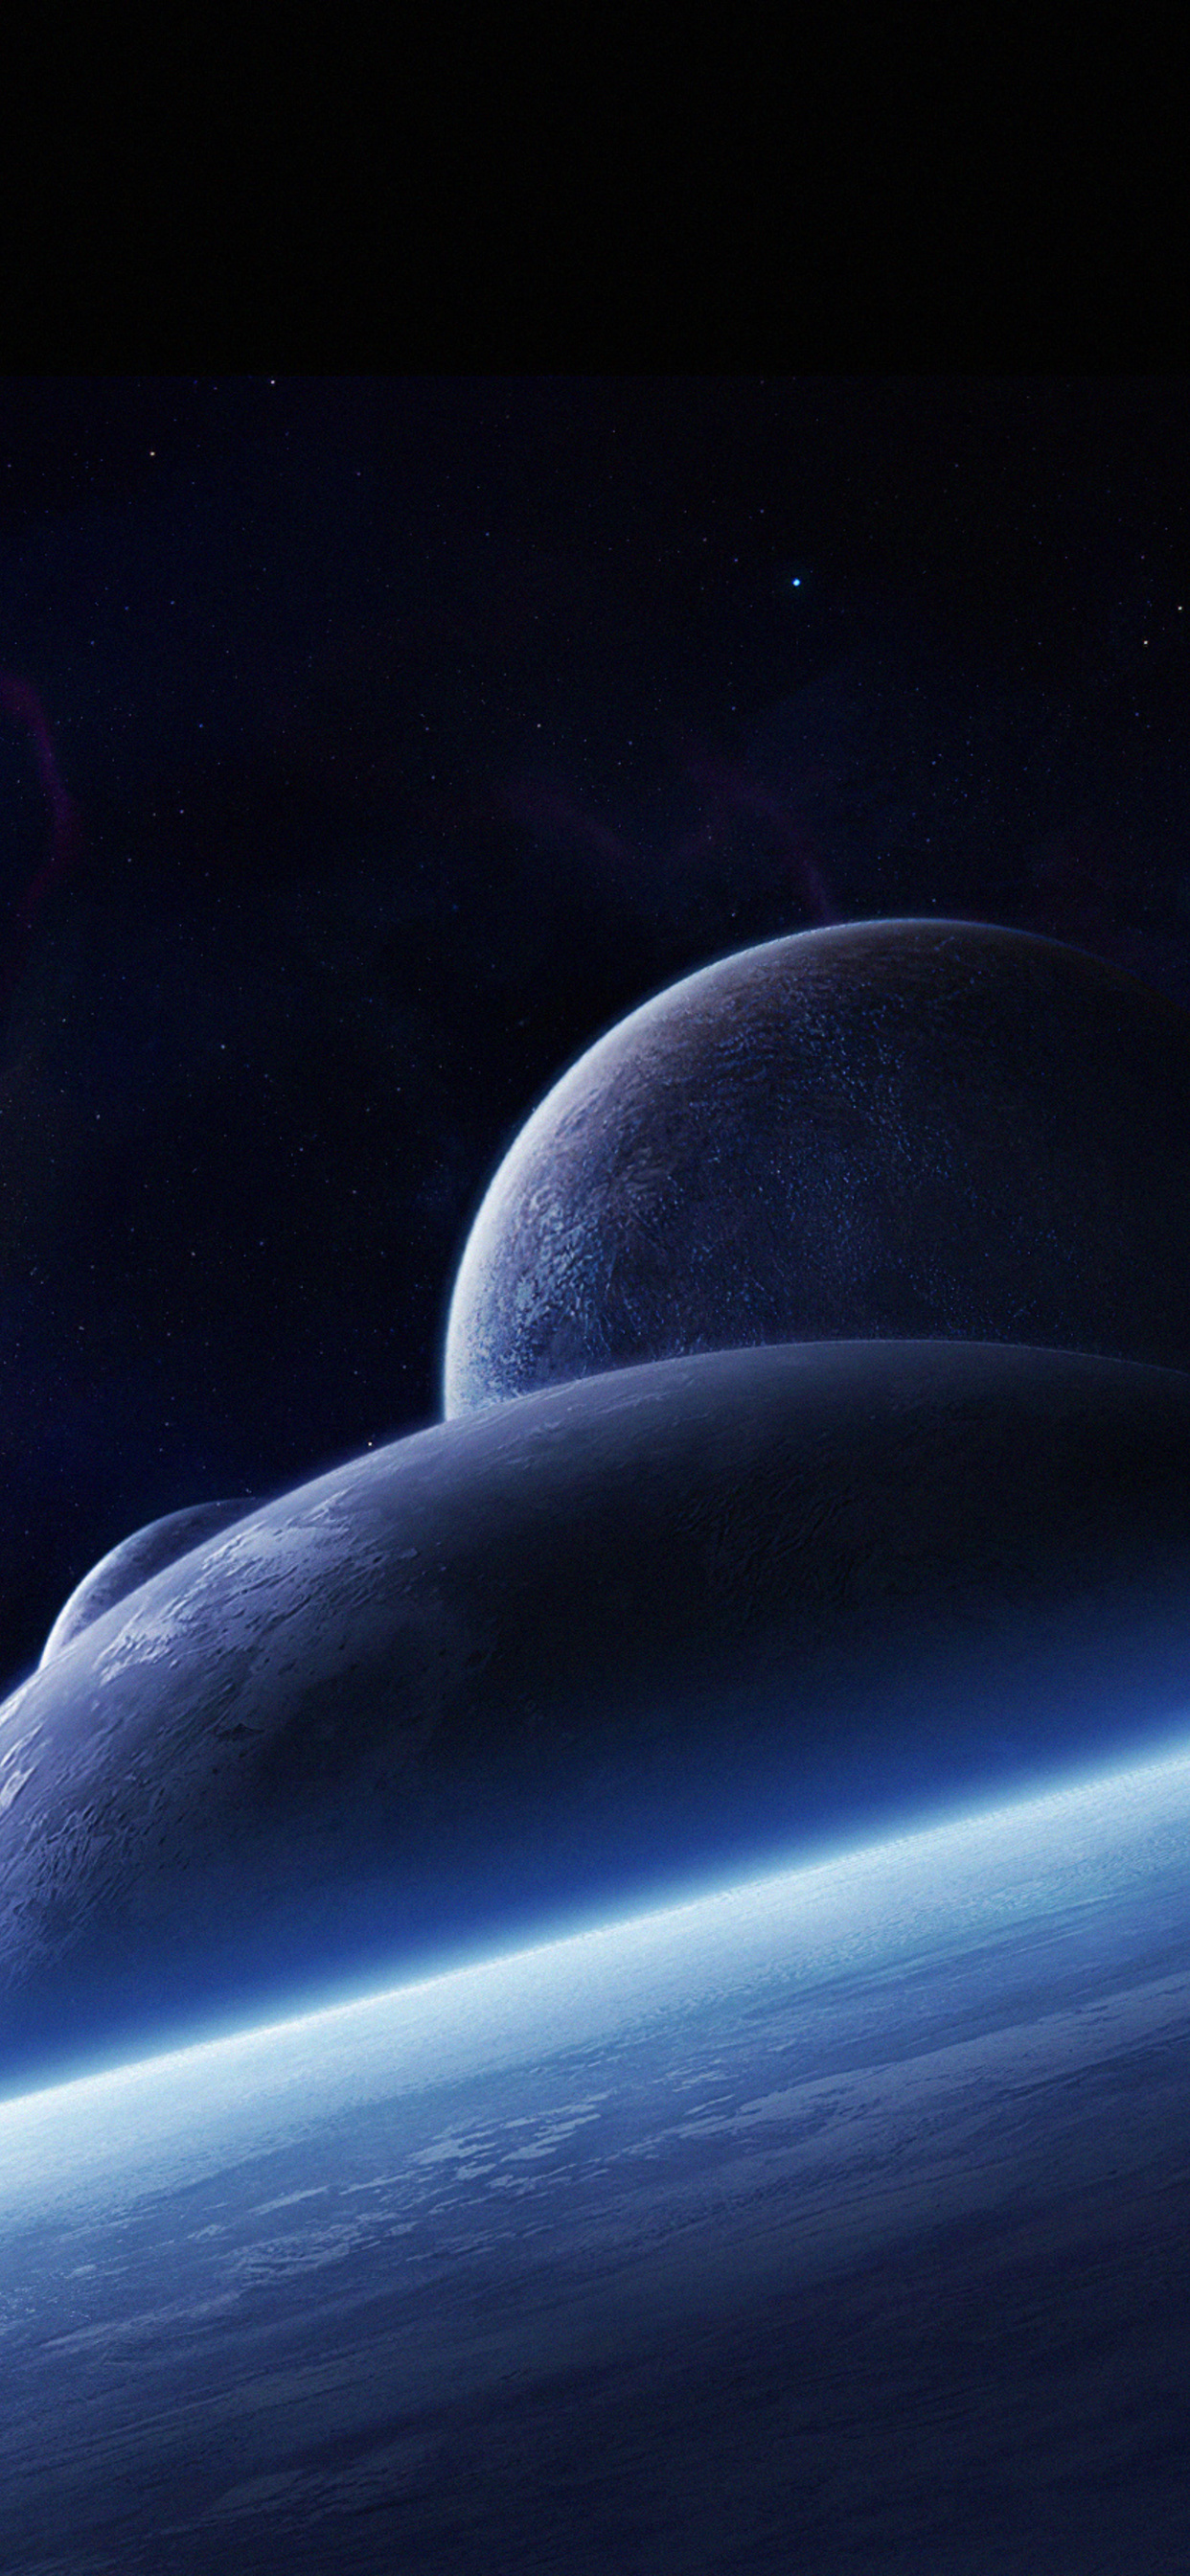 1242x2688 Planets Space Art 4k Iphone Xs Max Hd 4k Wallpapers